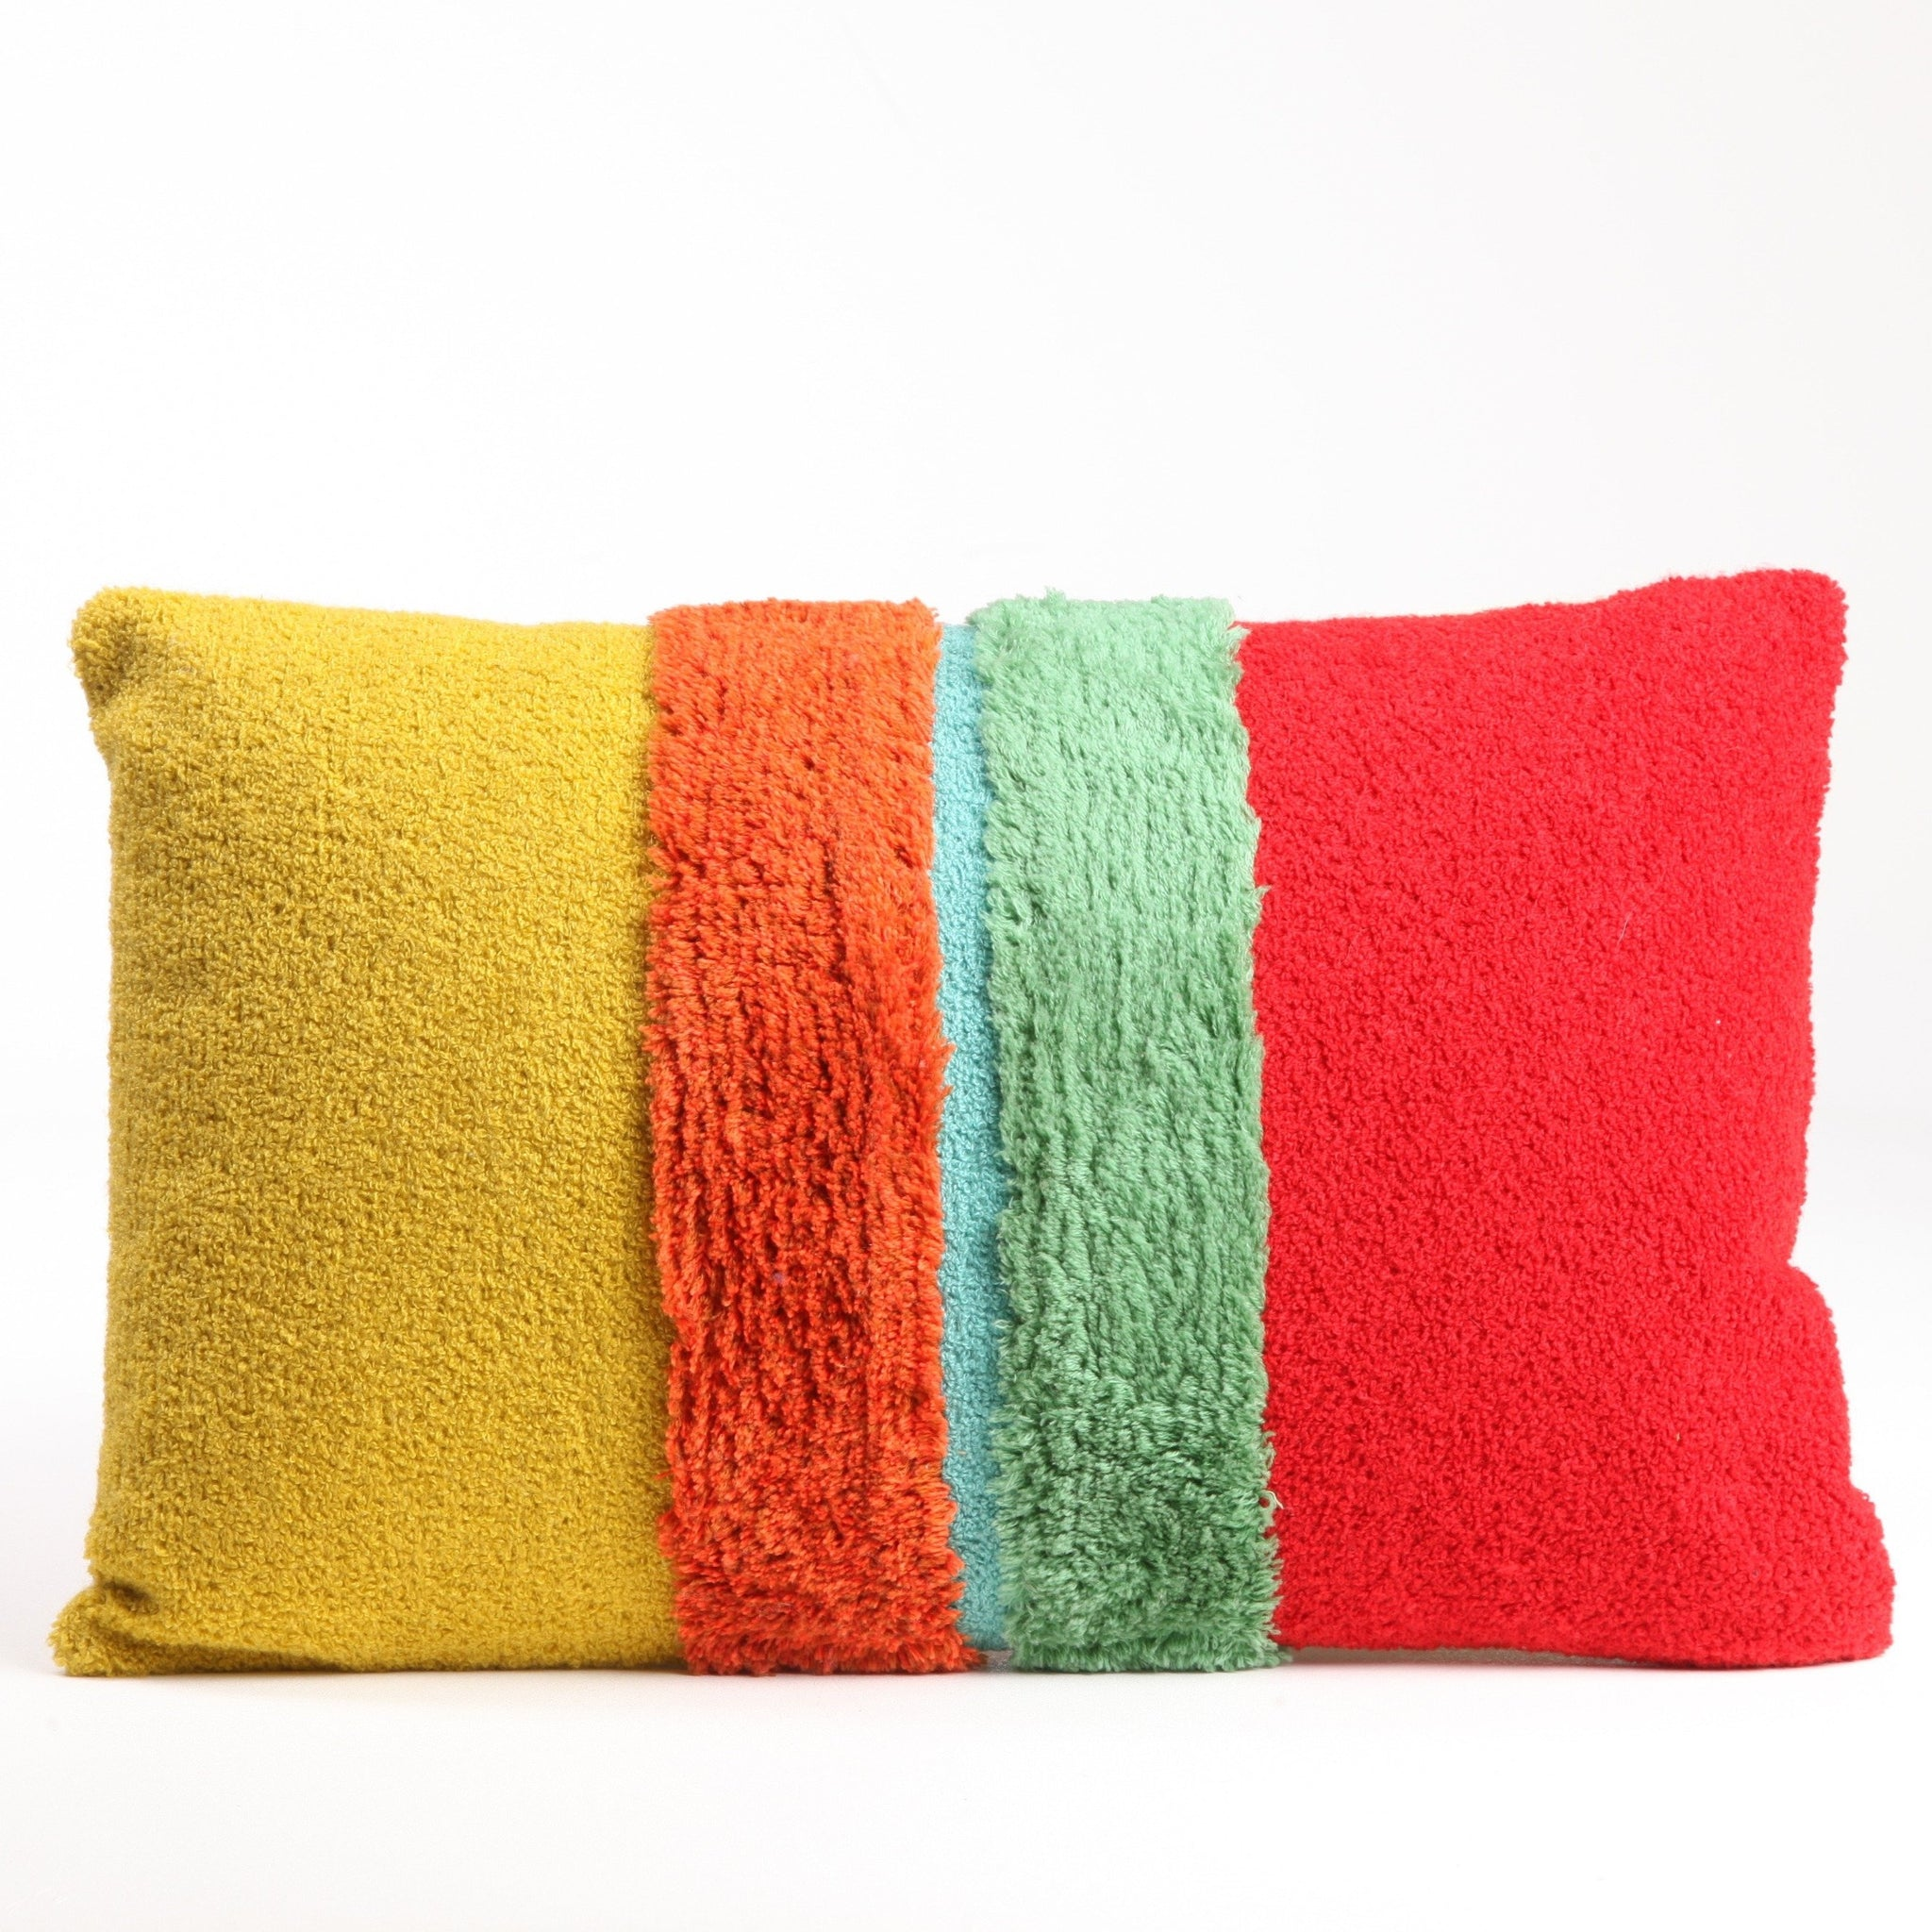 Bright Color Block Pillow